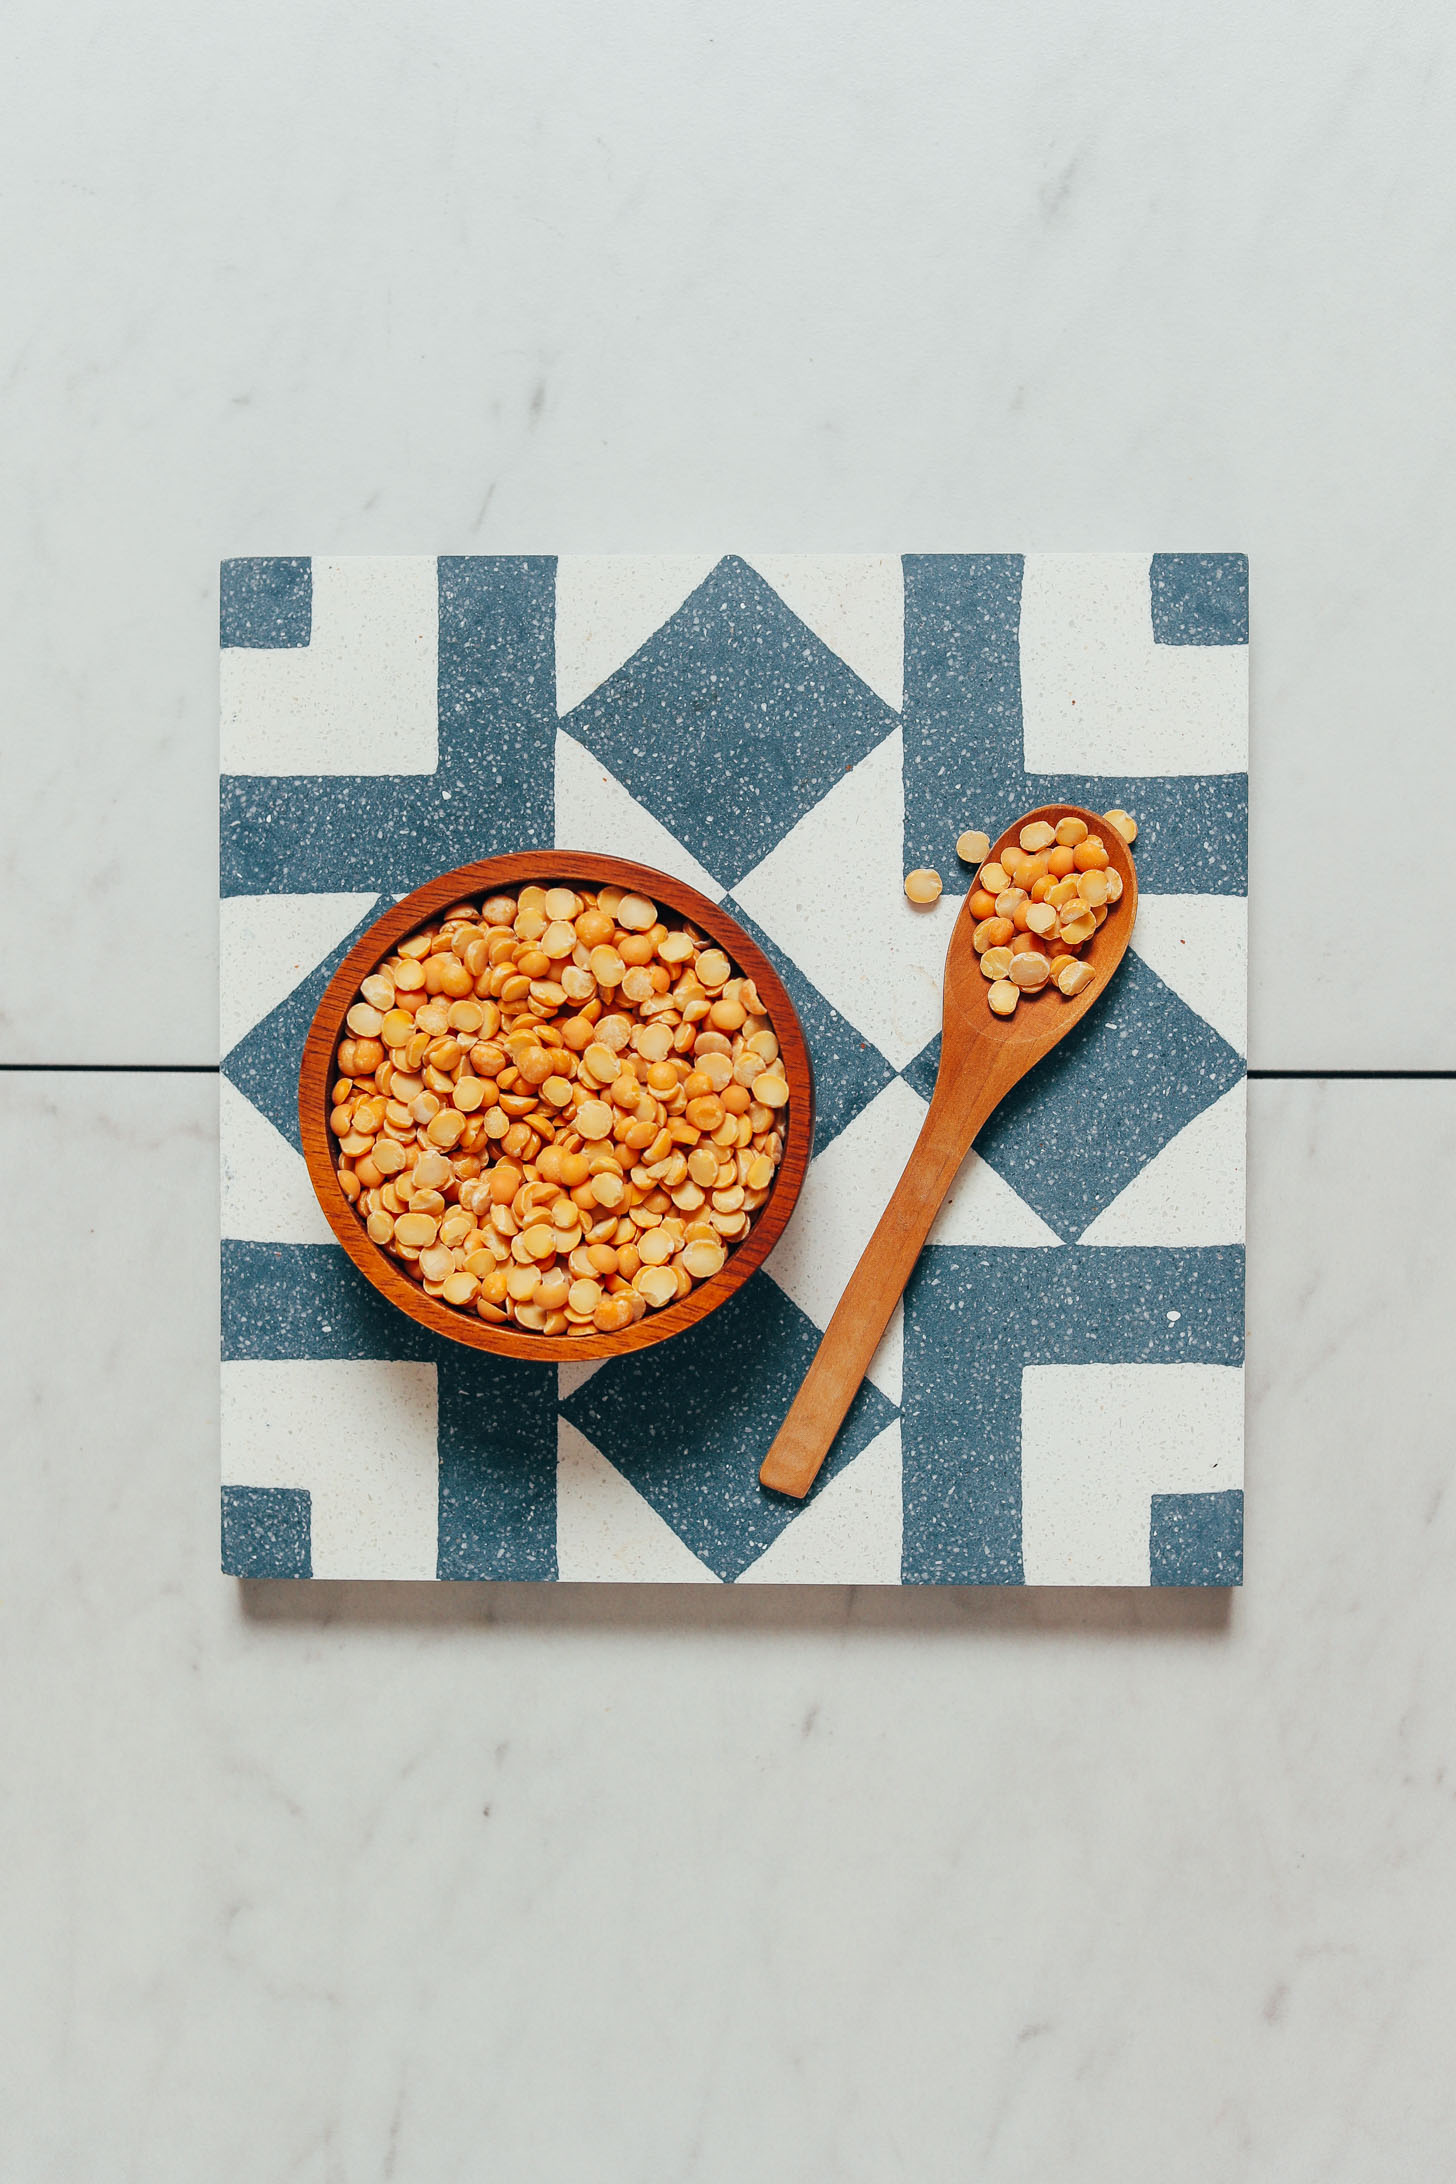 Spoon and bowl of dry yellow split peas